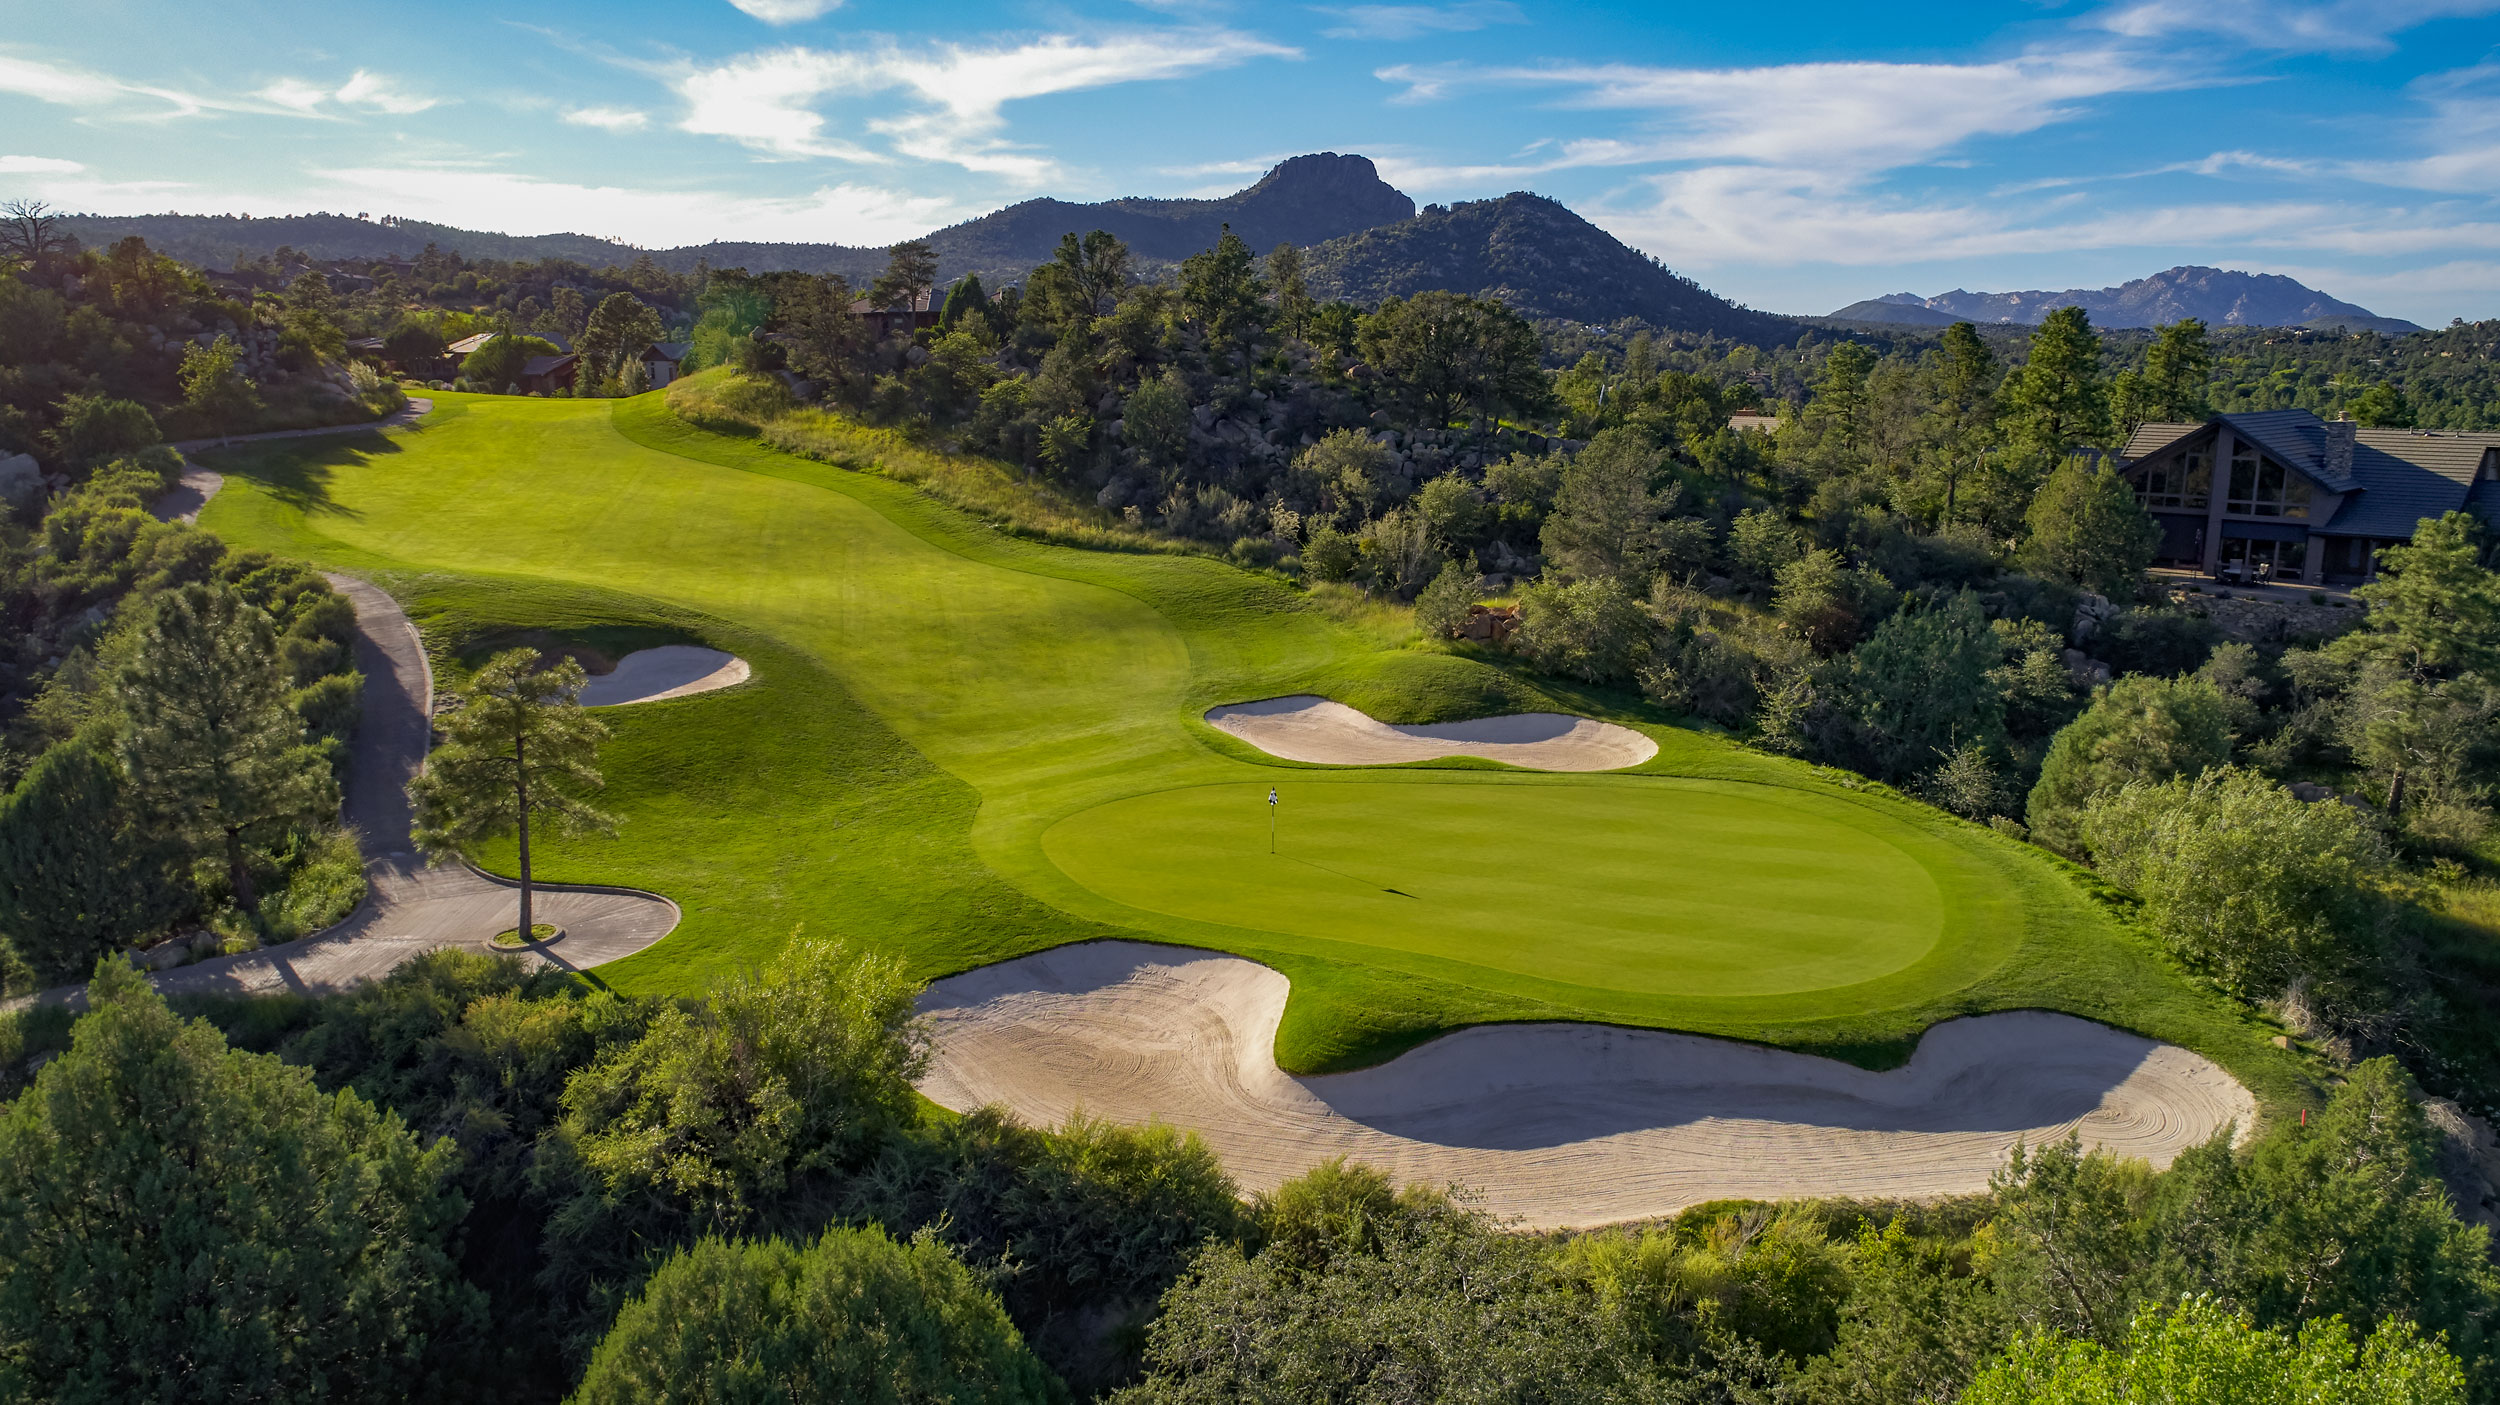 FPI Studios | Stunning Golf Course Photography